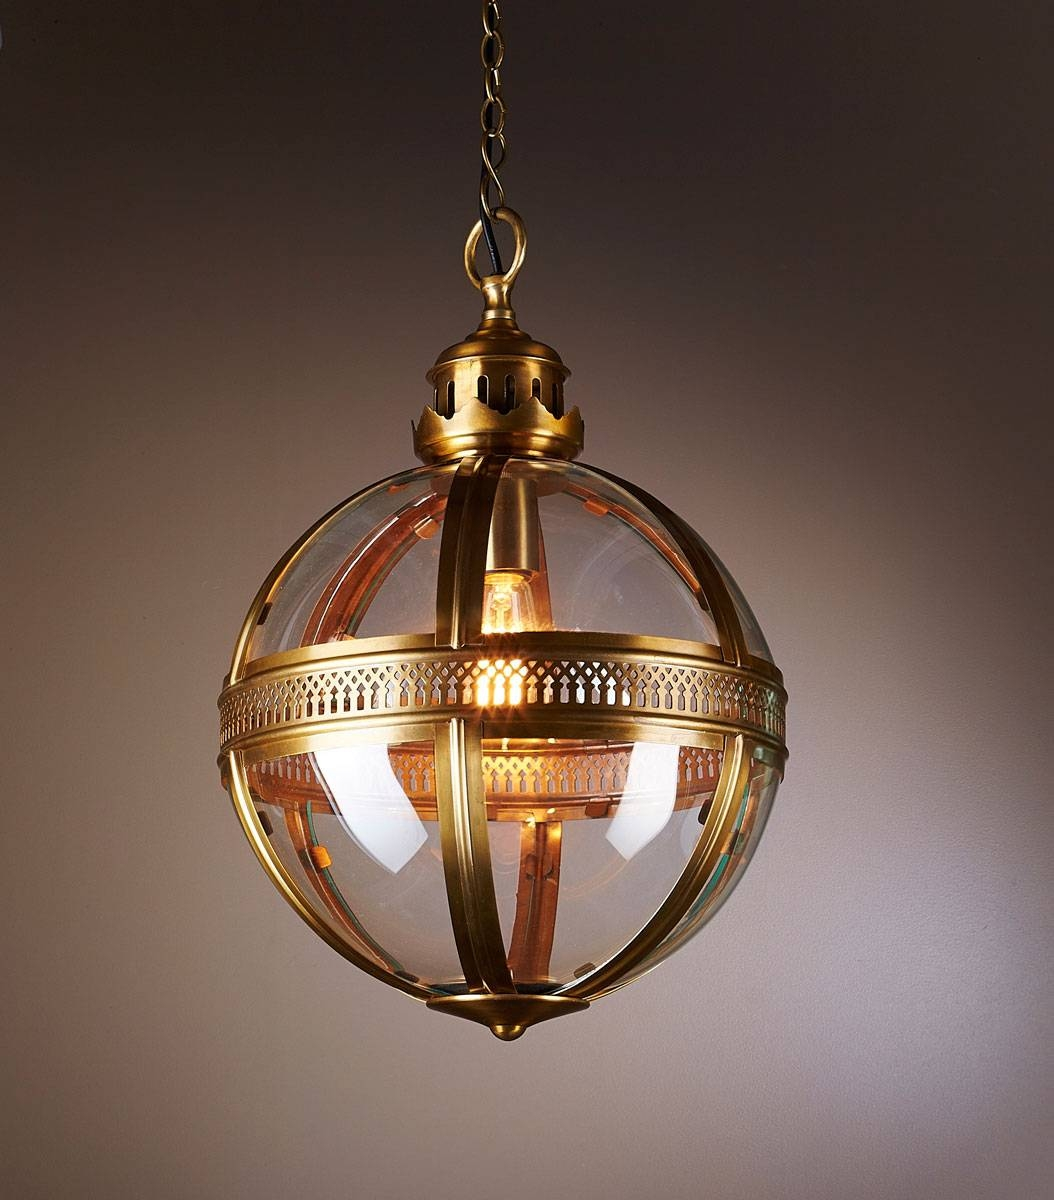 Moroccan Ceiling Lights Australia | Roselawnlutheran within Moroccan Style Lights Shades (Image 10 of 15)